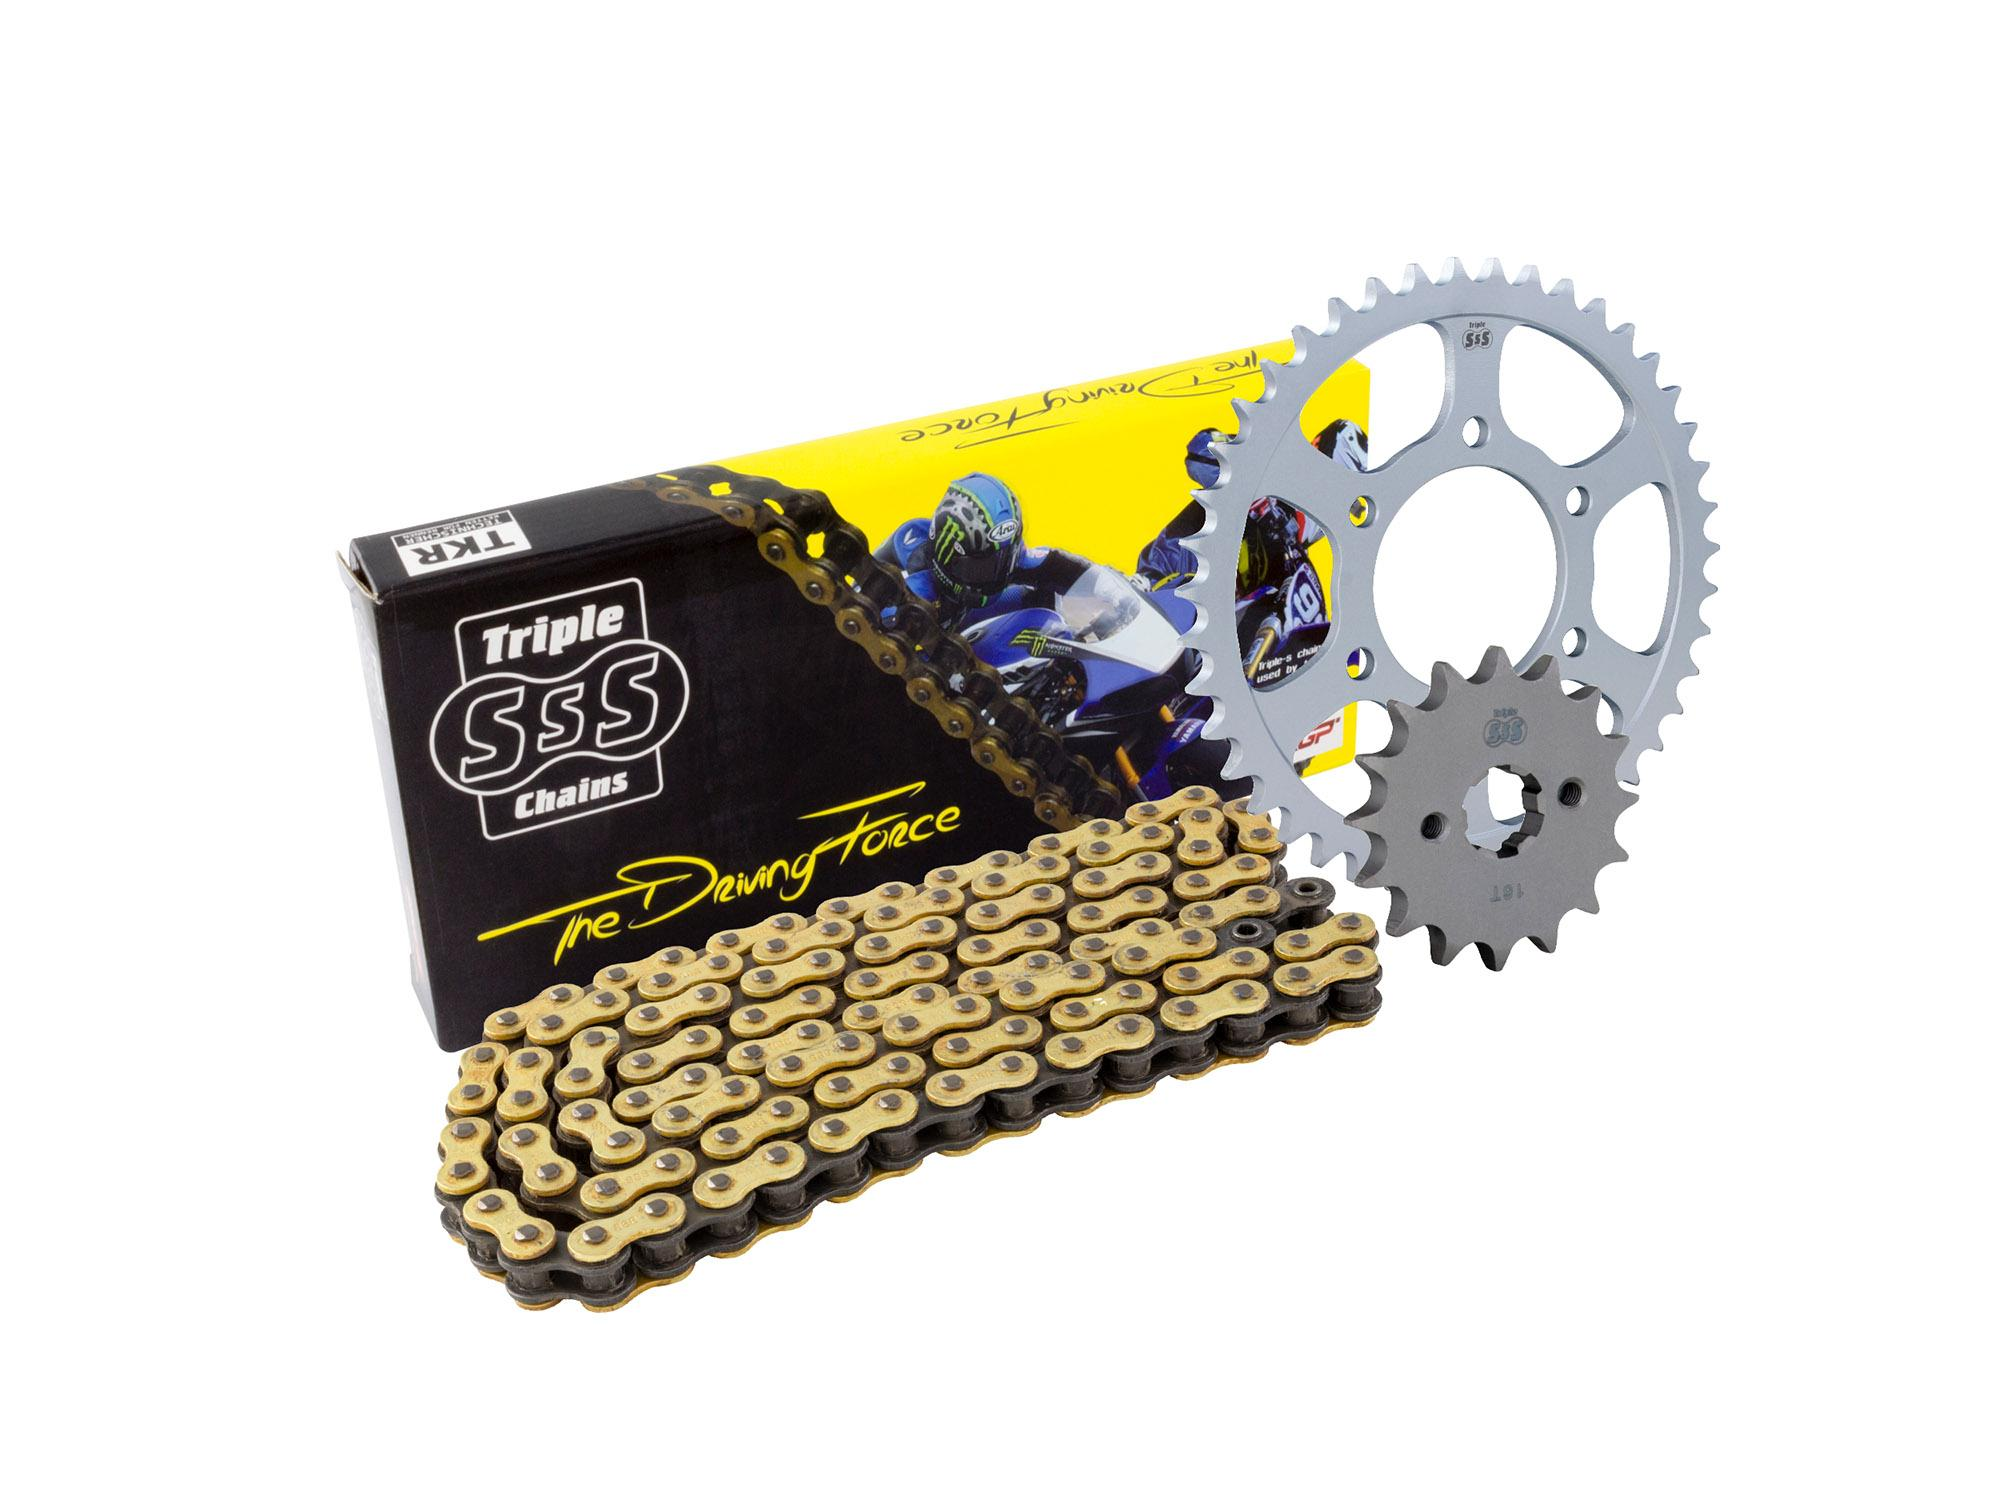 Ducati 749 R 06 Chain & Sprocket Kit: 15T Front, 36T Rear, HD O-Ring Gold Chain 525H 98Link